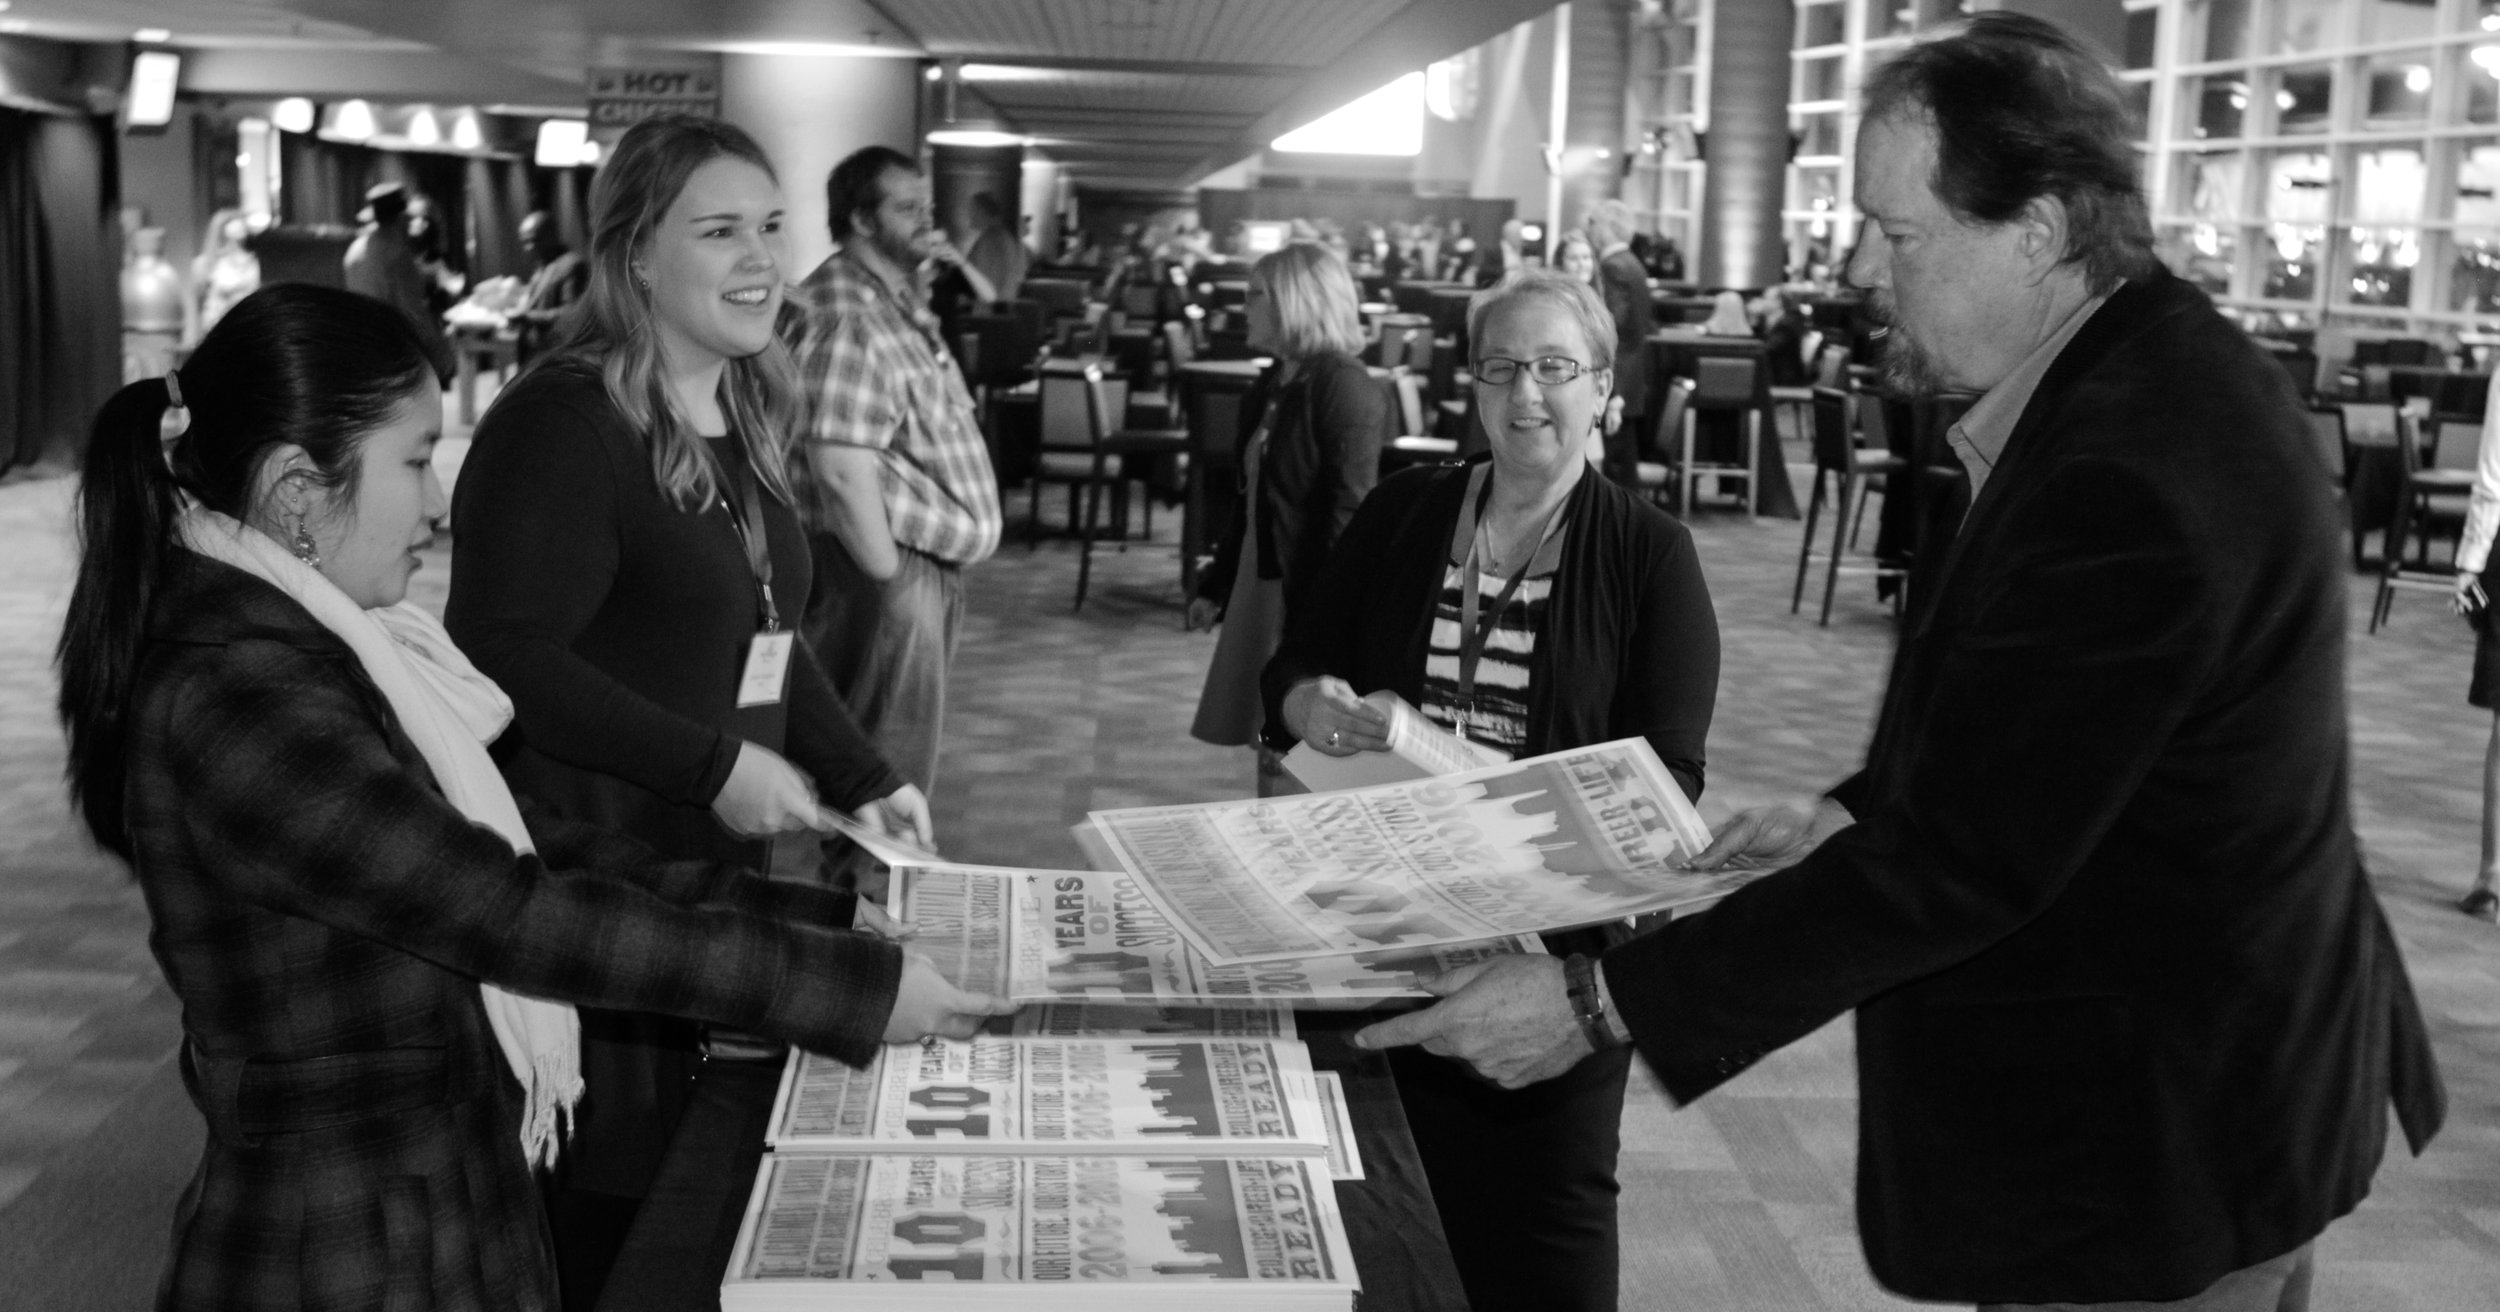 Every business partner and school employee in attendance received a commemorative Hatch Show Print to recognize the work of the past decade in the Academies of Nashville.